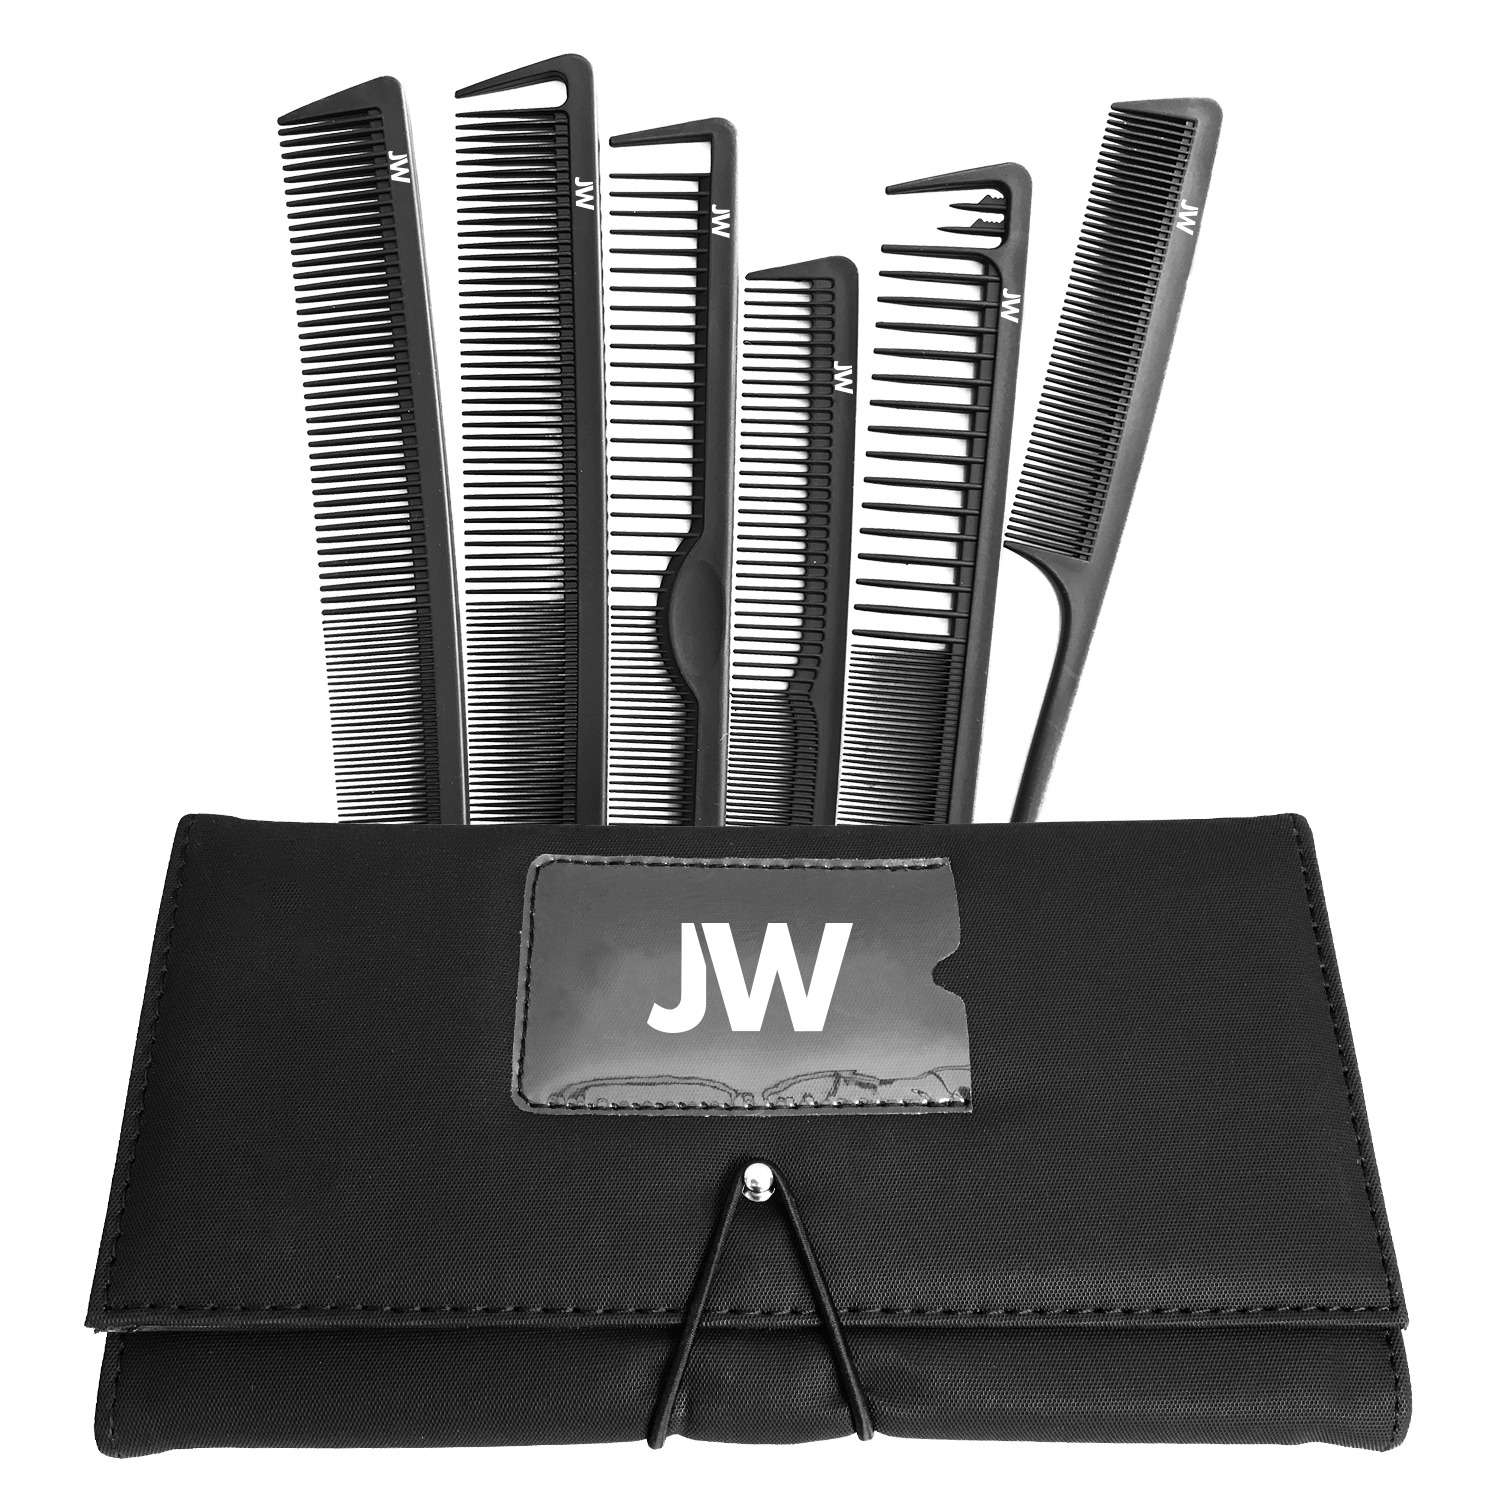 JW 6 Piece Carbon Comb Set with Case